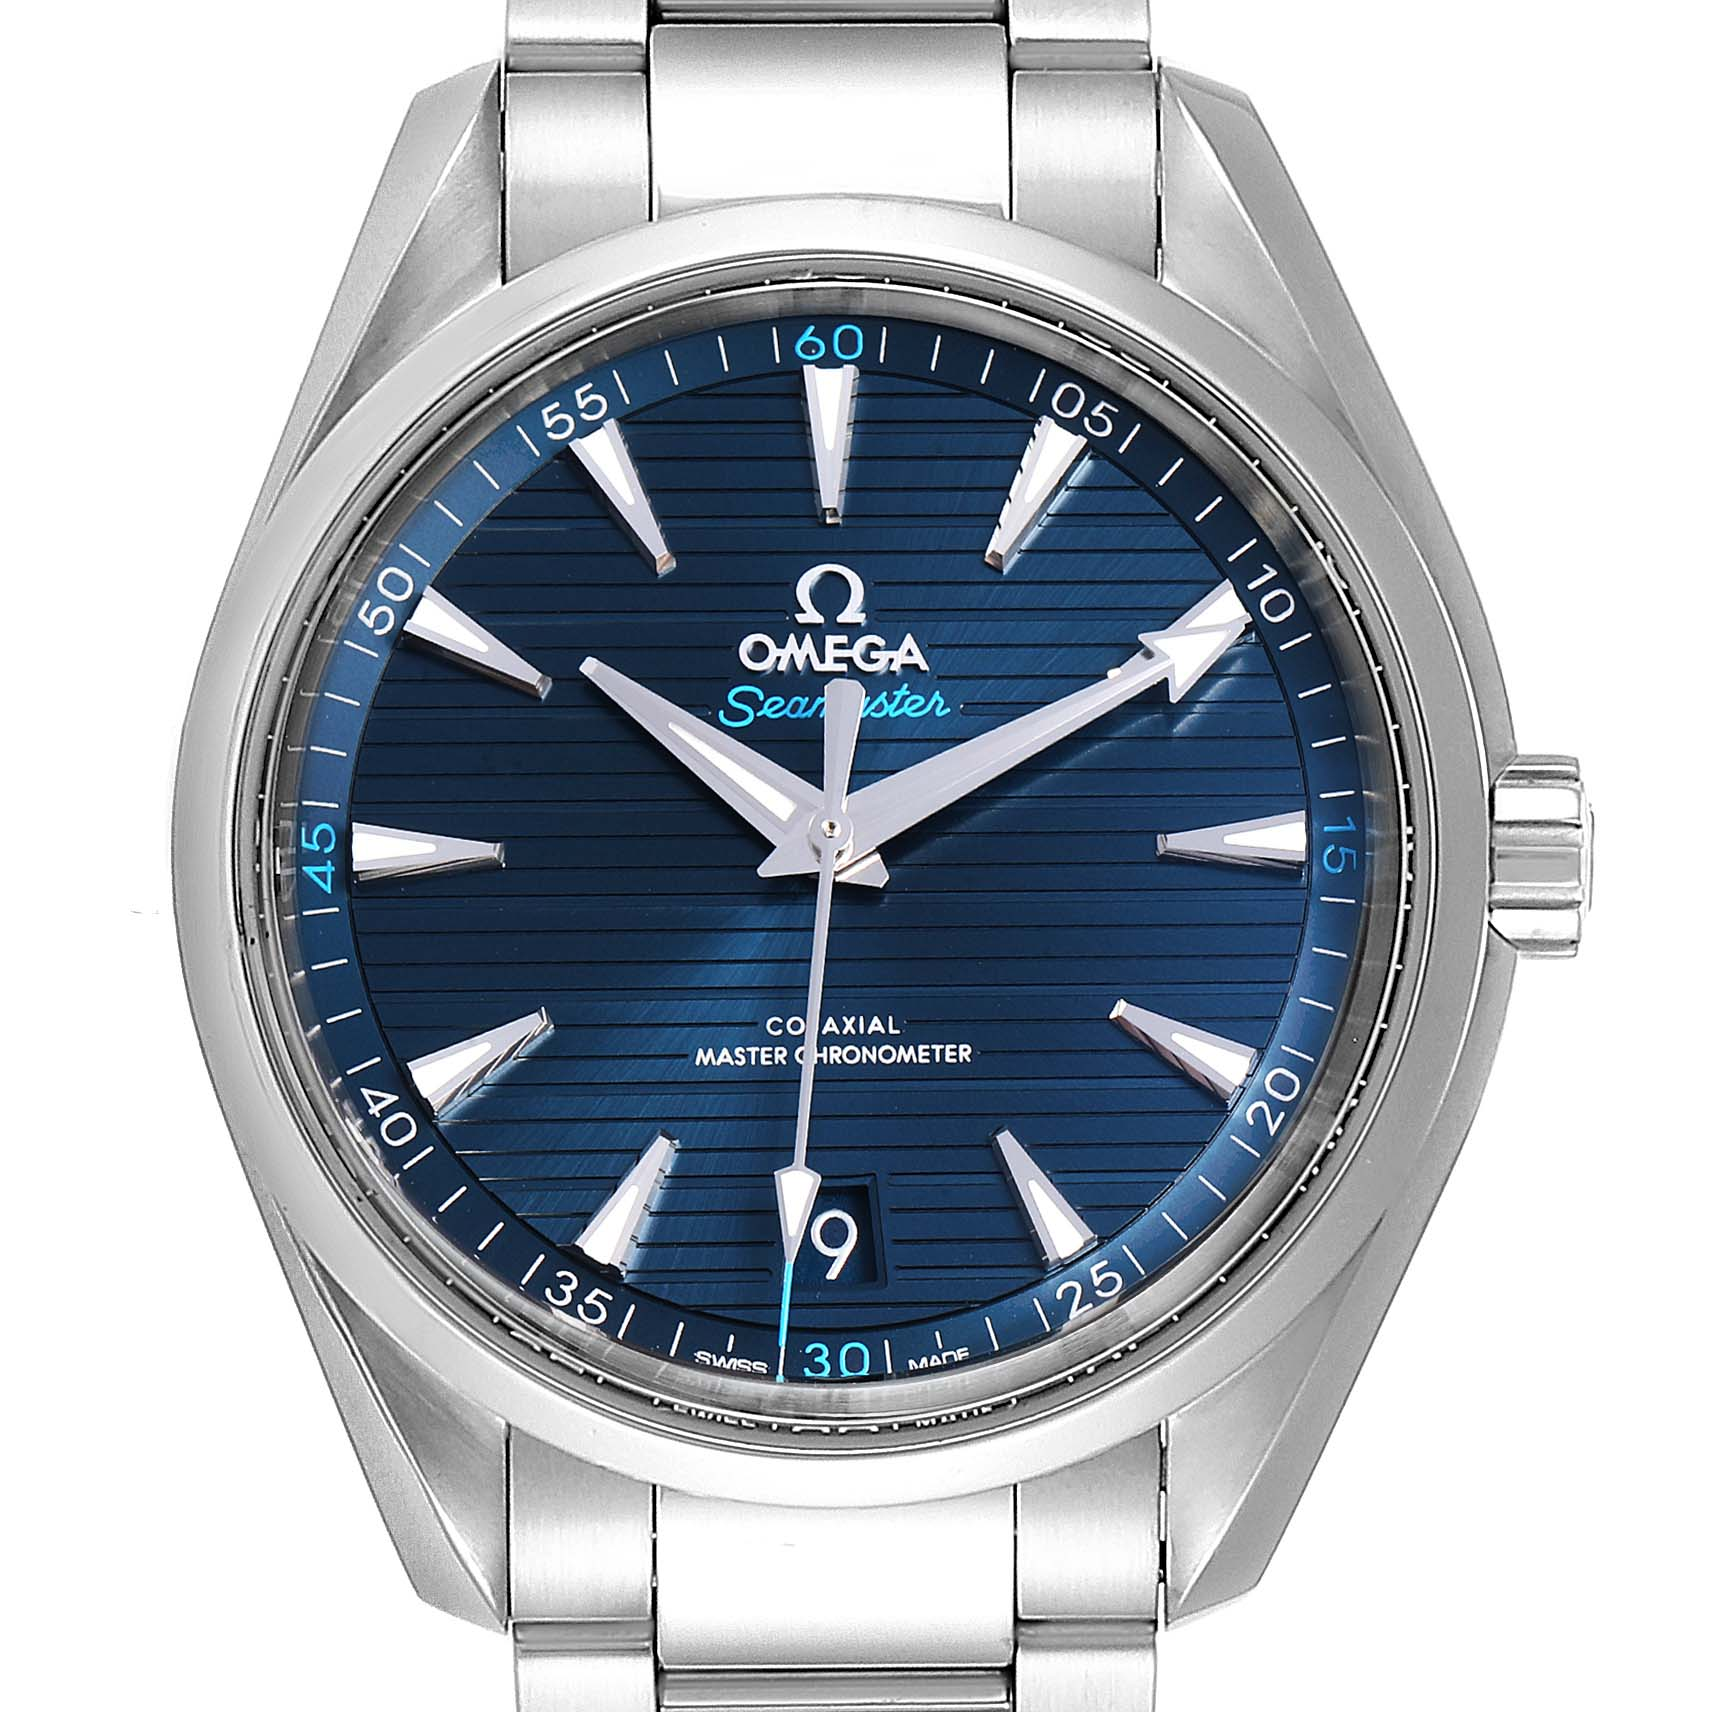 Omega Seamaster Aqua Terra Blue Dial Watch 220.10.41.21.03.001 Box Card